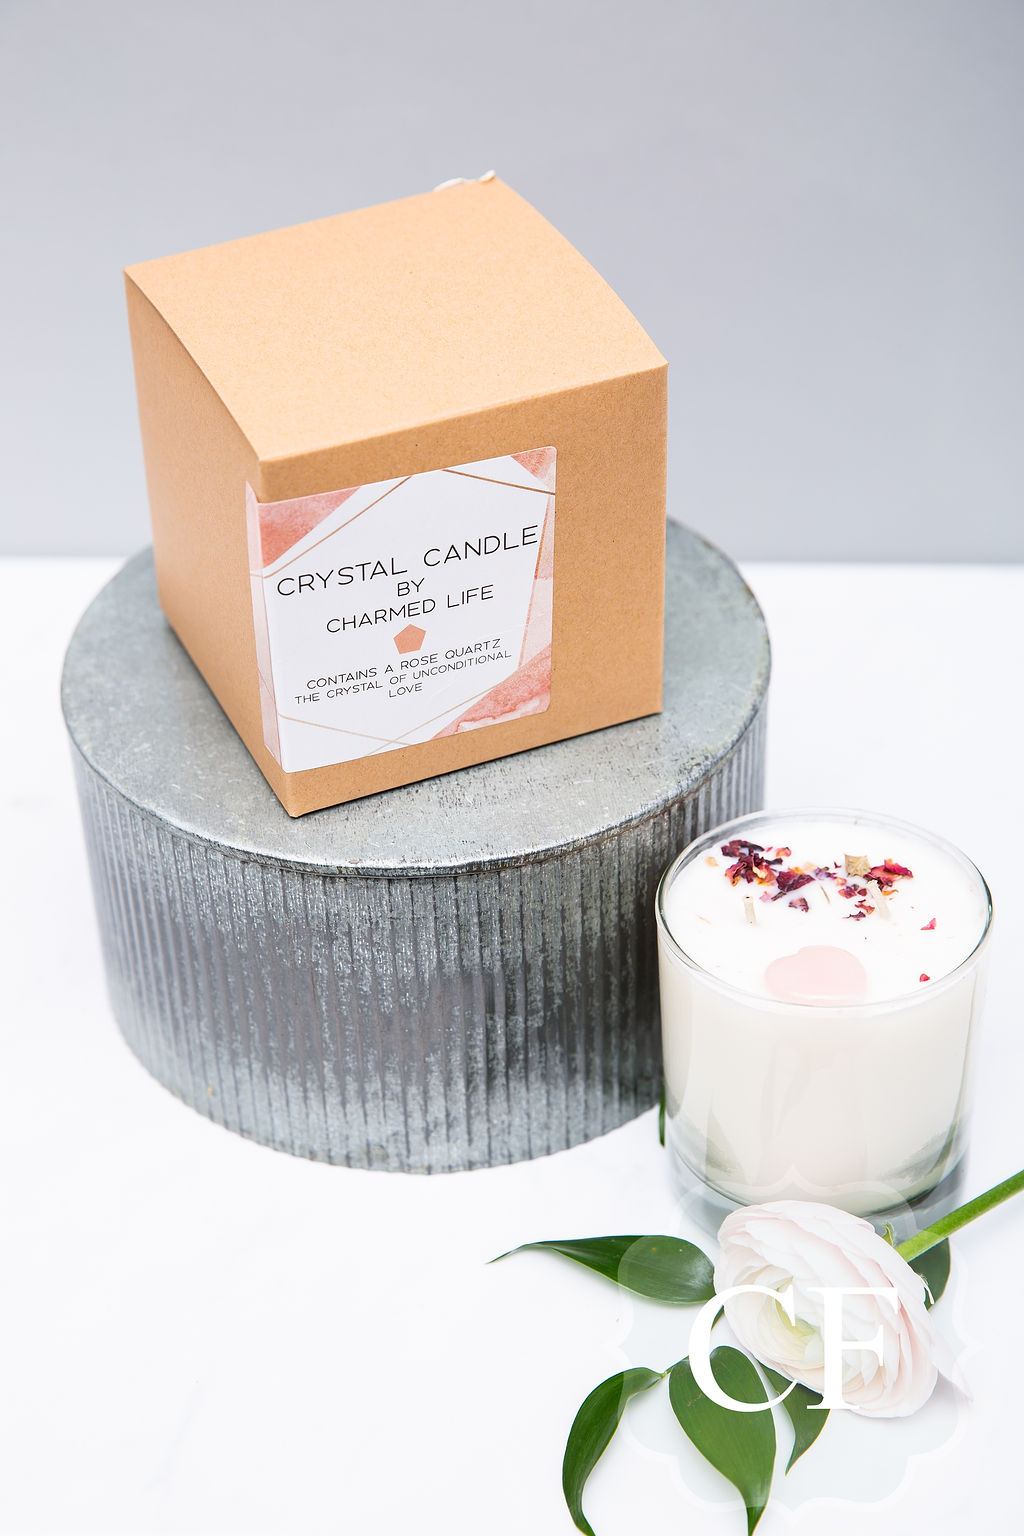 - The Unconditional Love Candle. This candle contains a heart shaped rose quartz- the love stone.